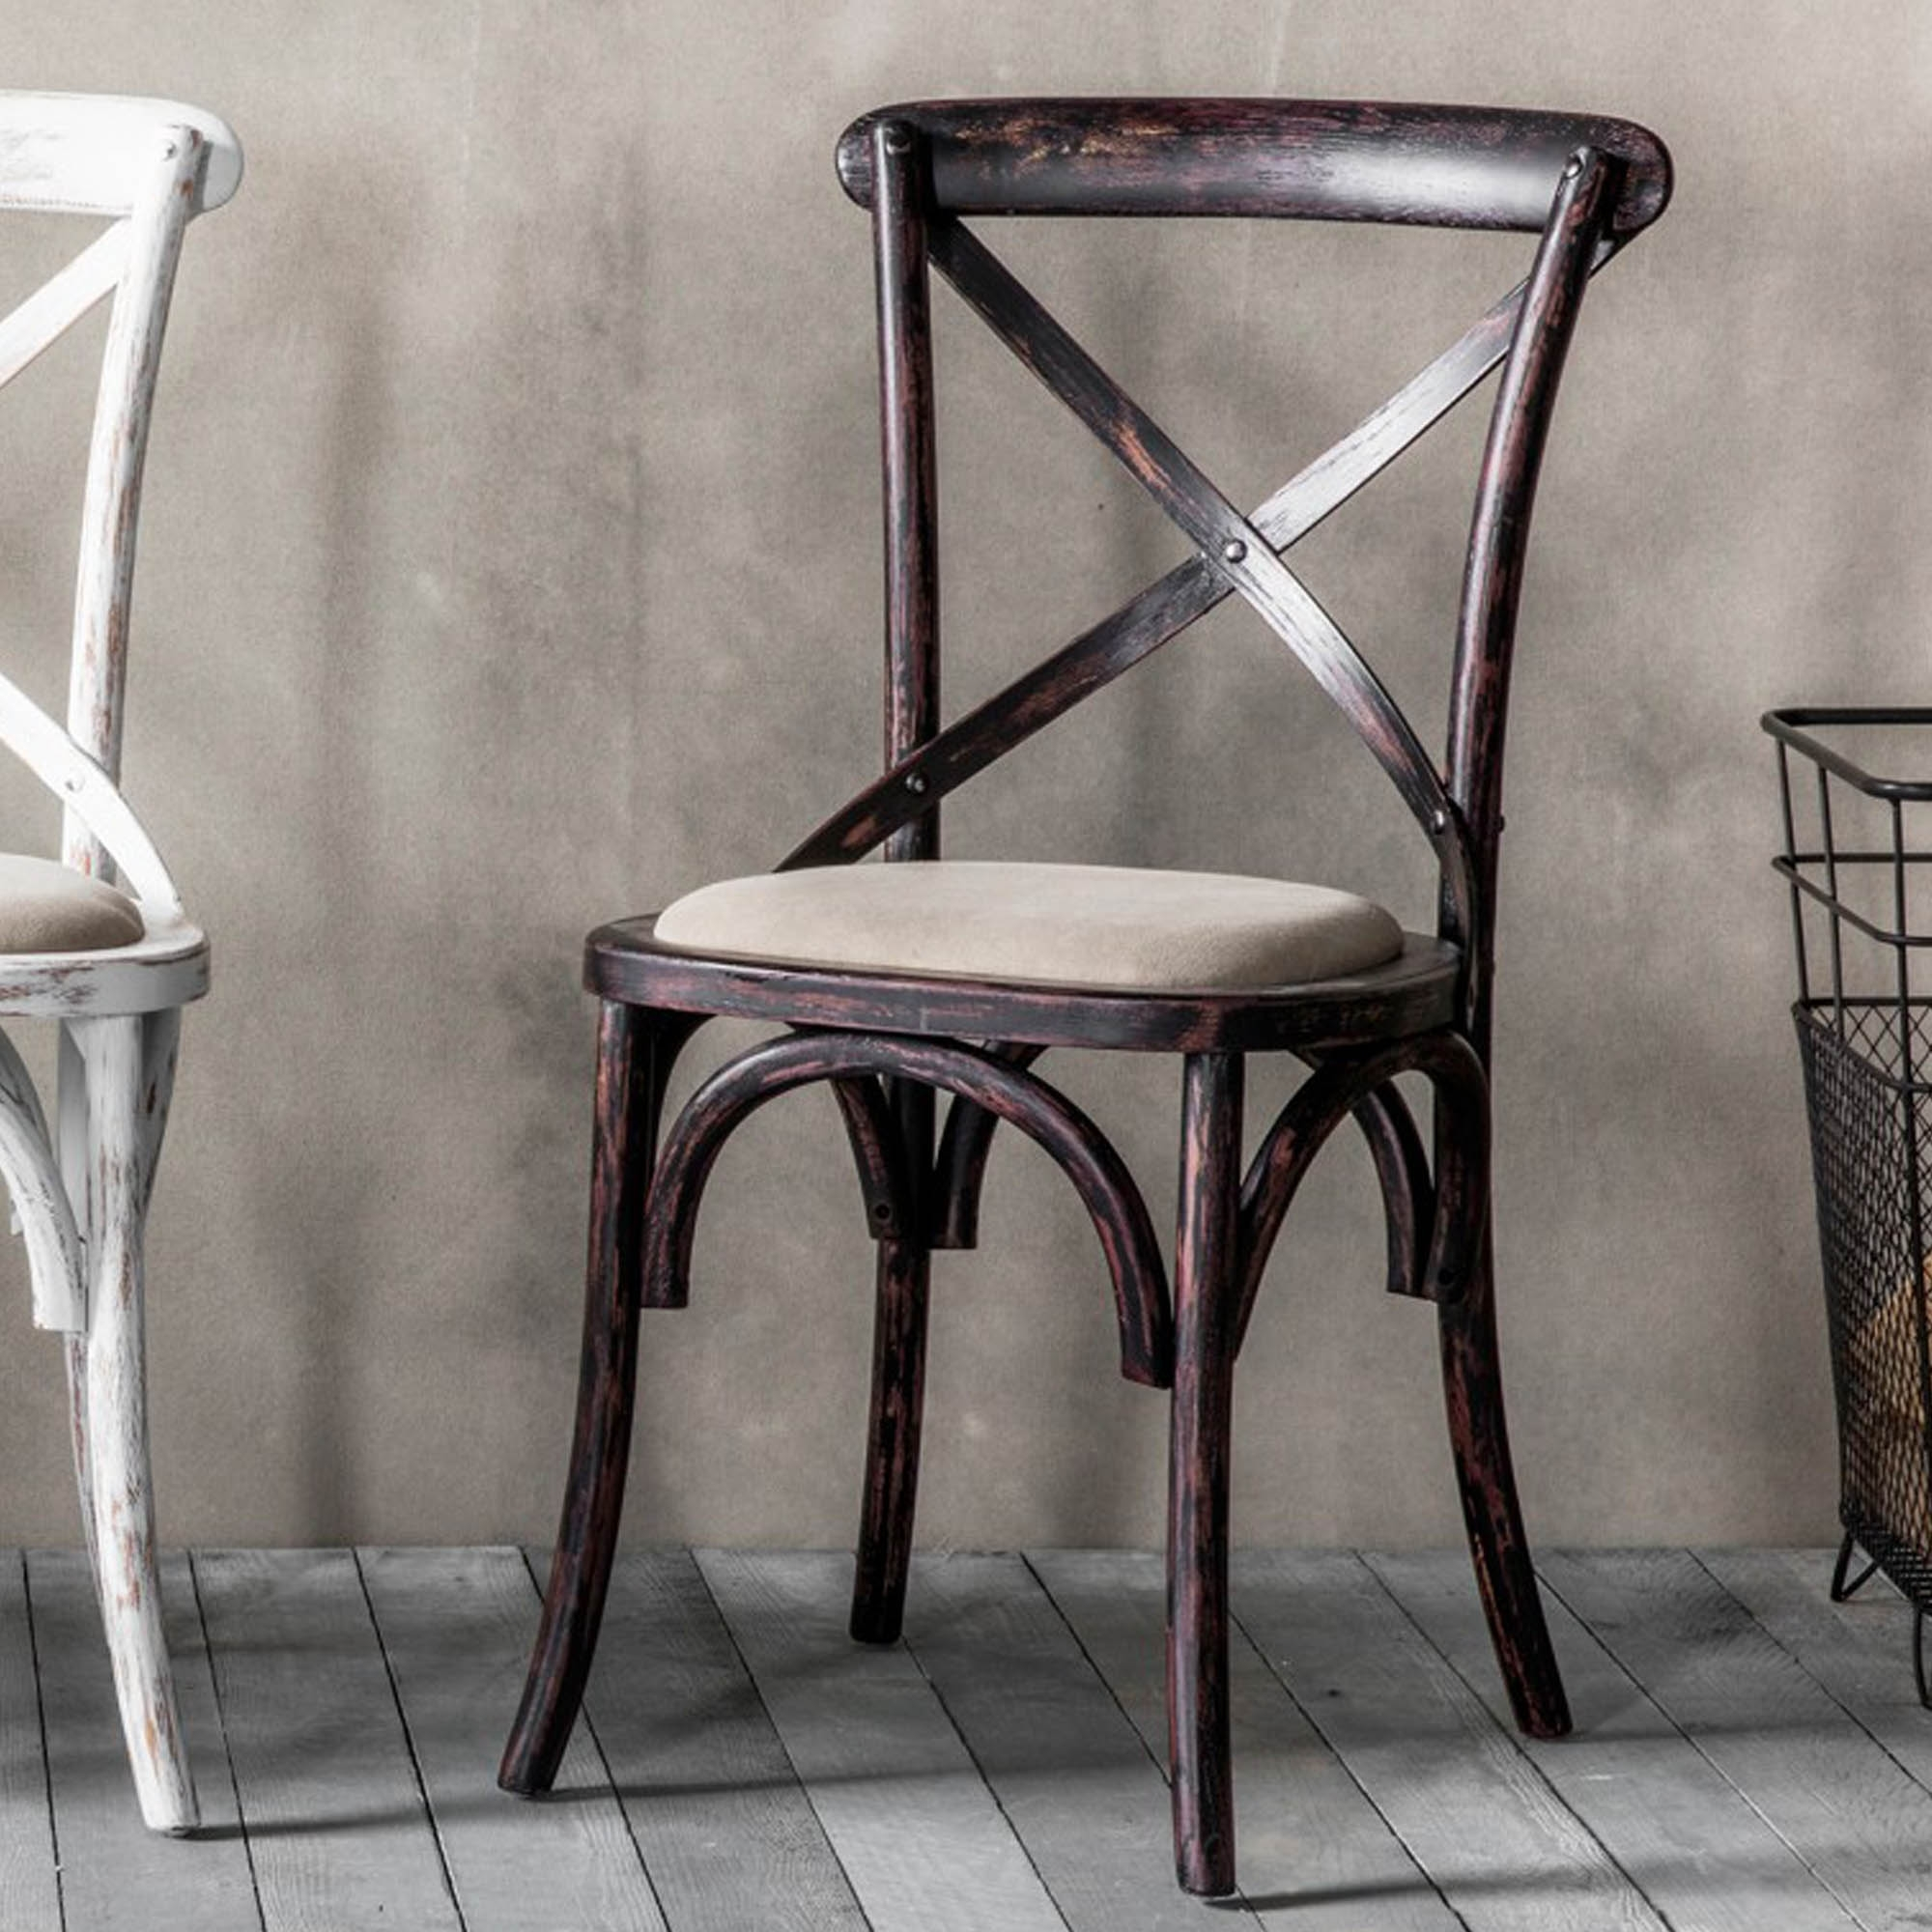 caf 2 black shabby chic chairs chairs homesdirect365 rh homesdirect365 co uk shabby chic chairs northern ireland shabby chic chairs uk